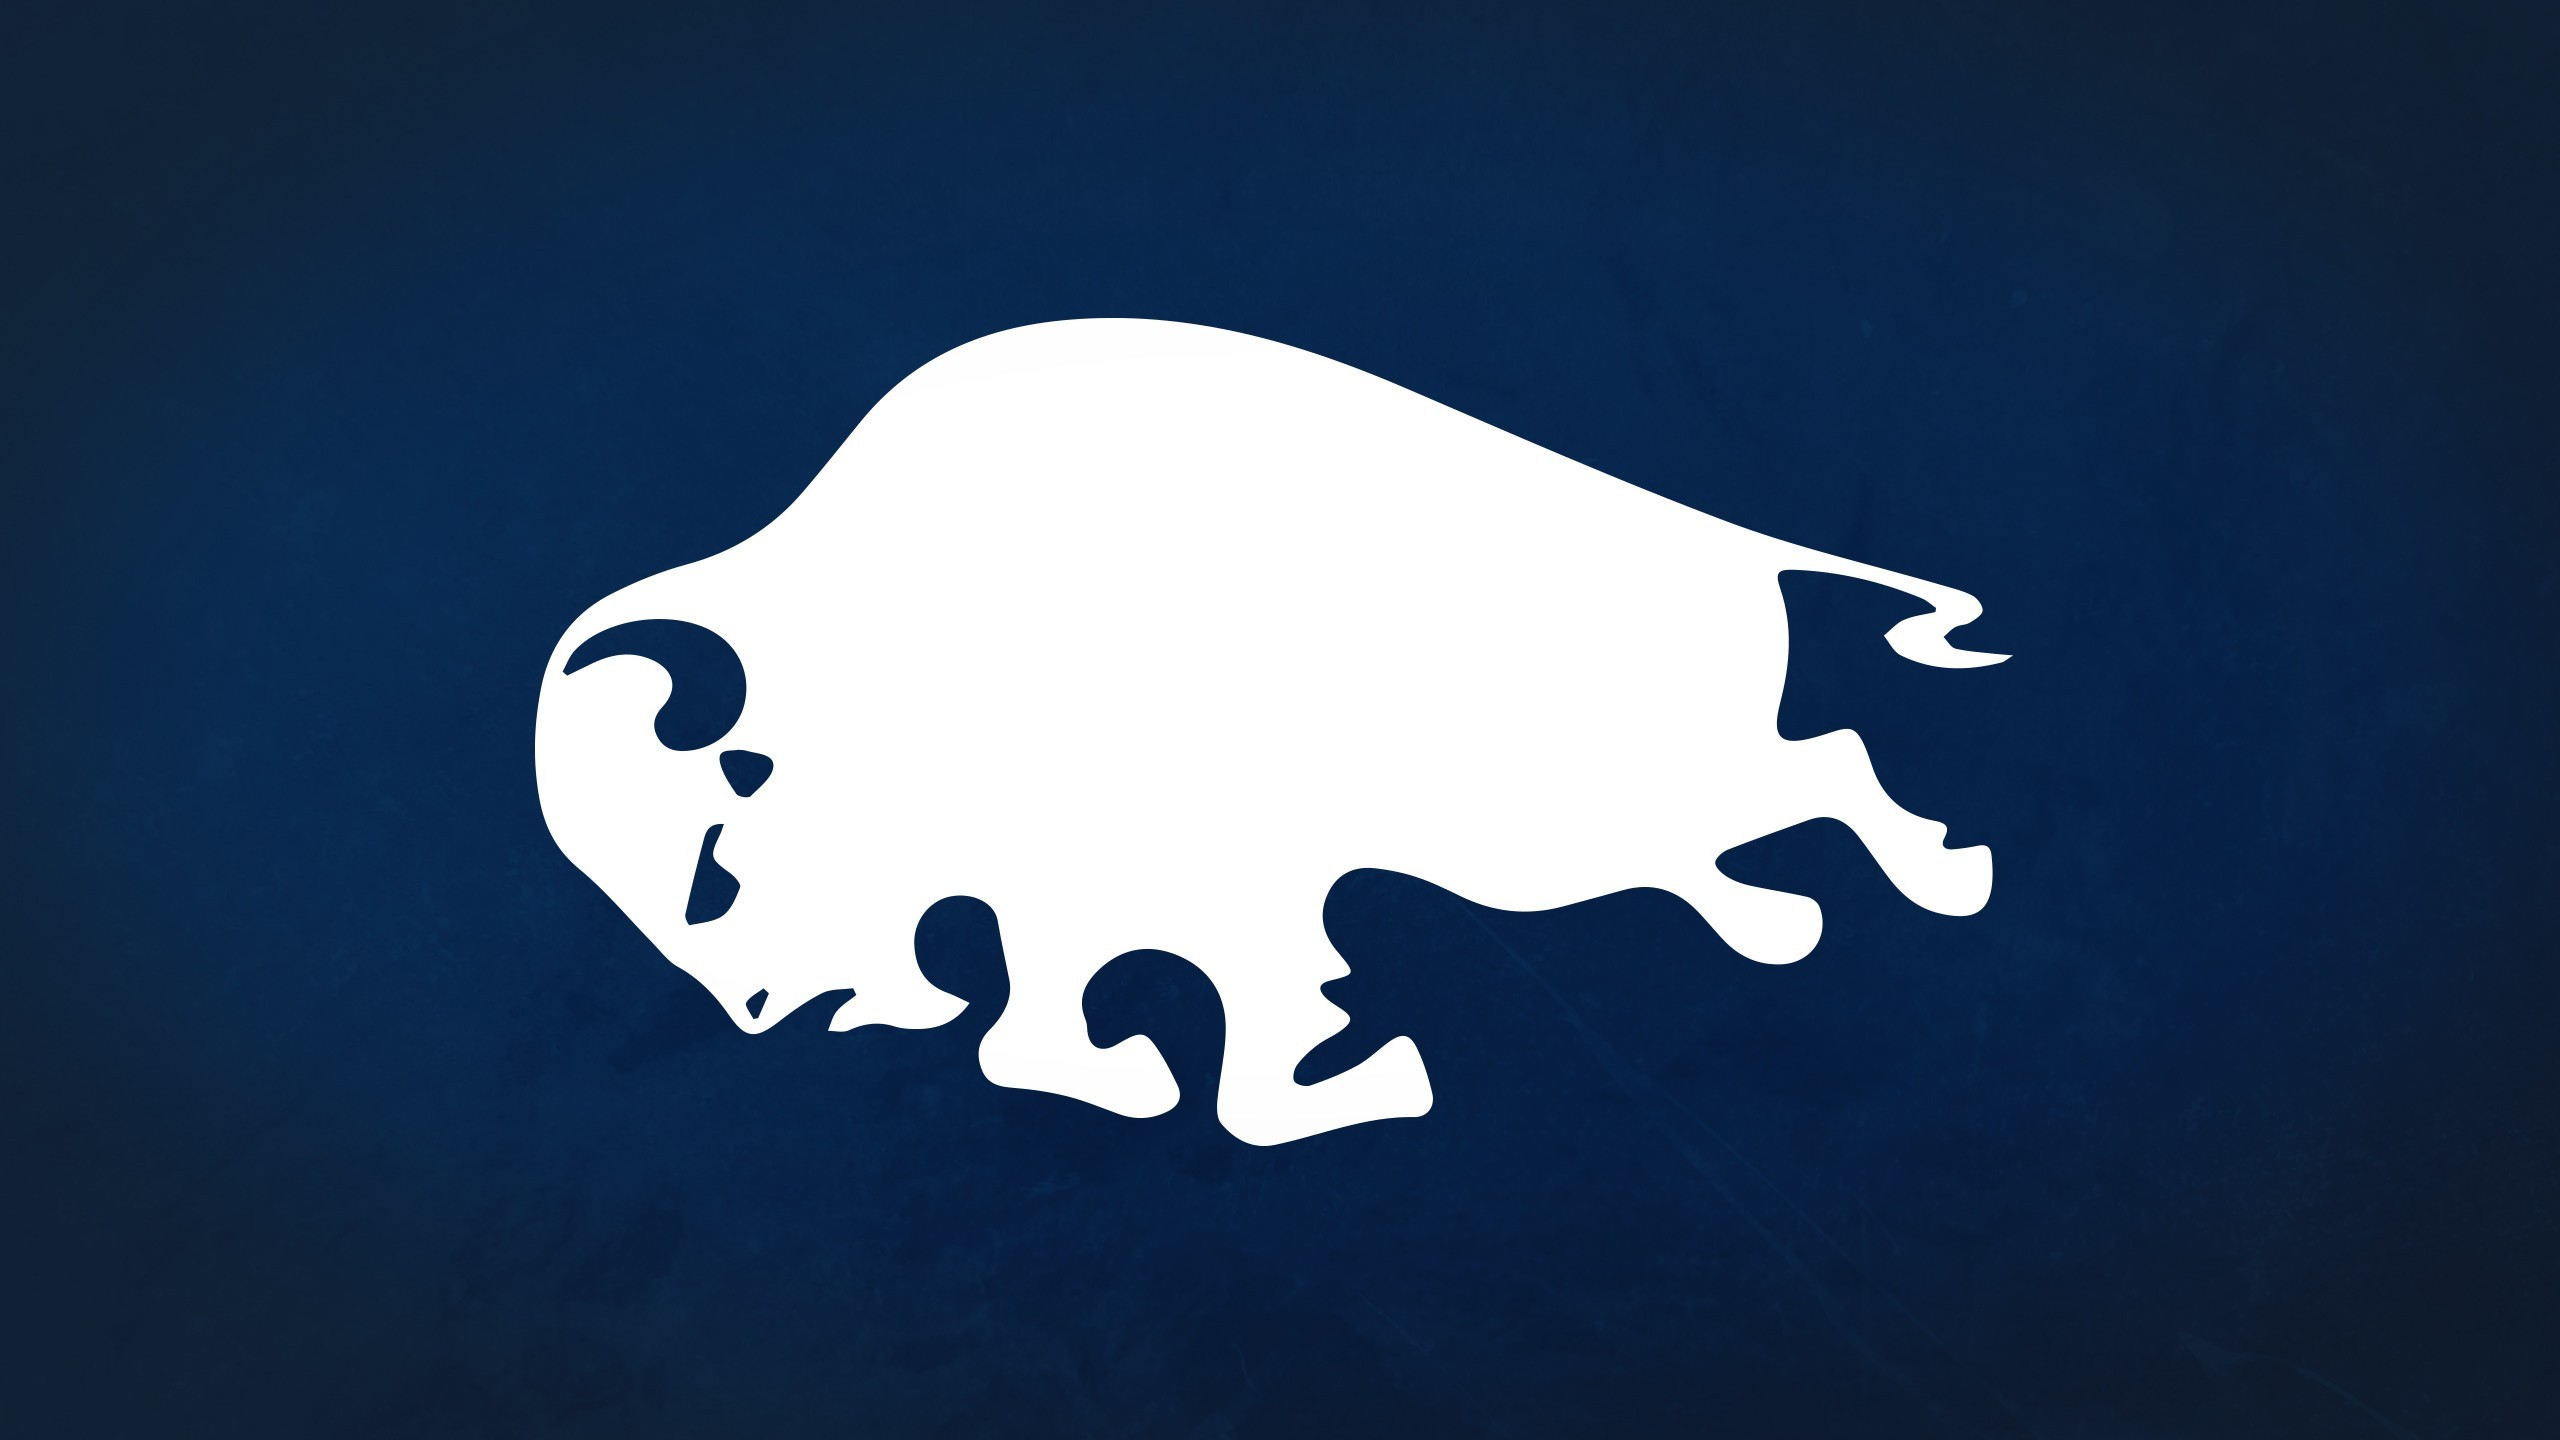 2560x1440 Buffalo Sabres HD Wallpaper | Background Image |  | ID:415074 -  Wallpaper Abyss